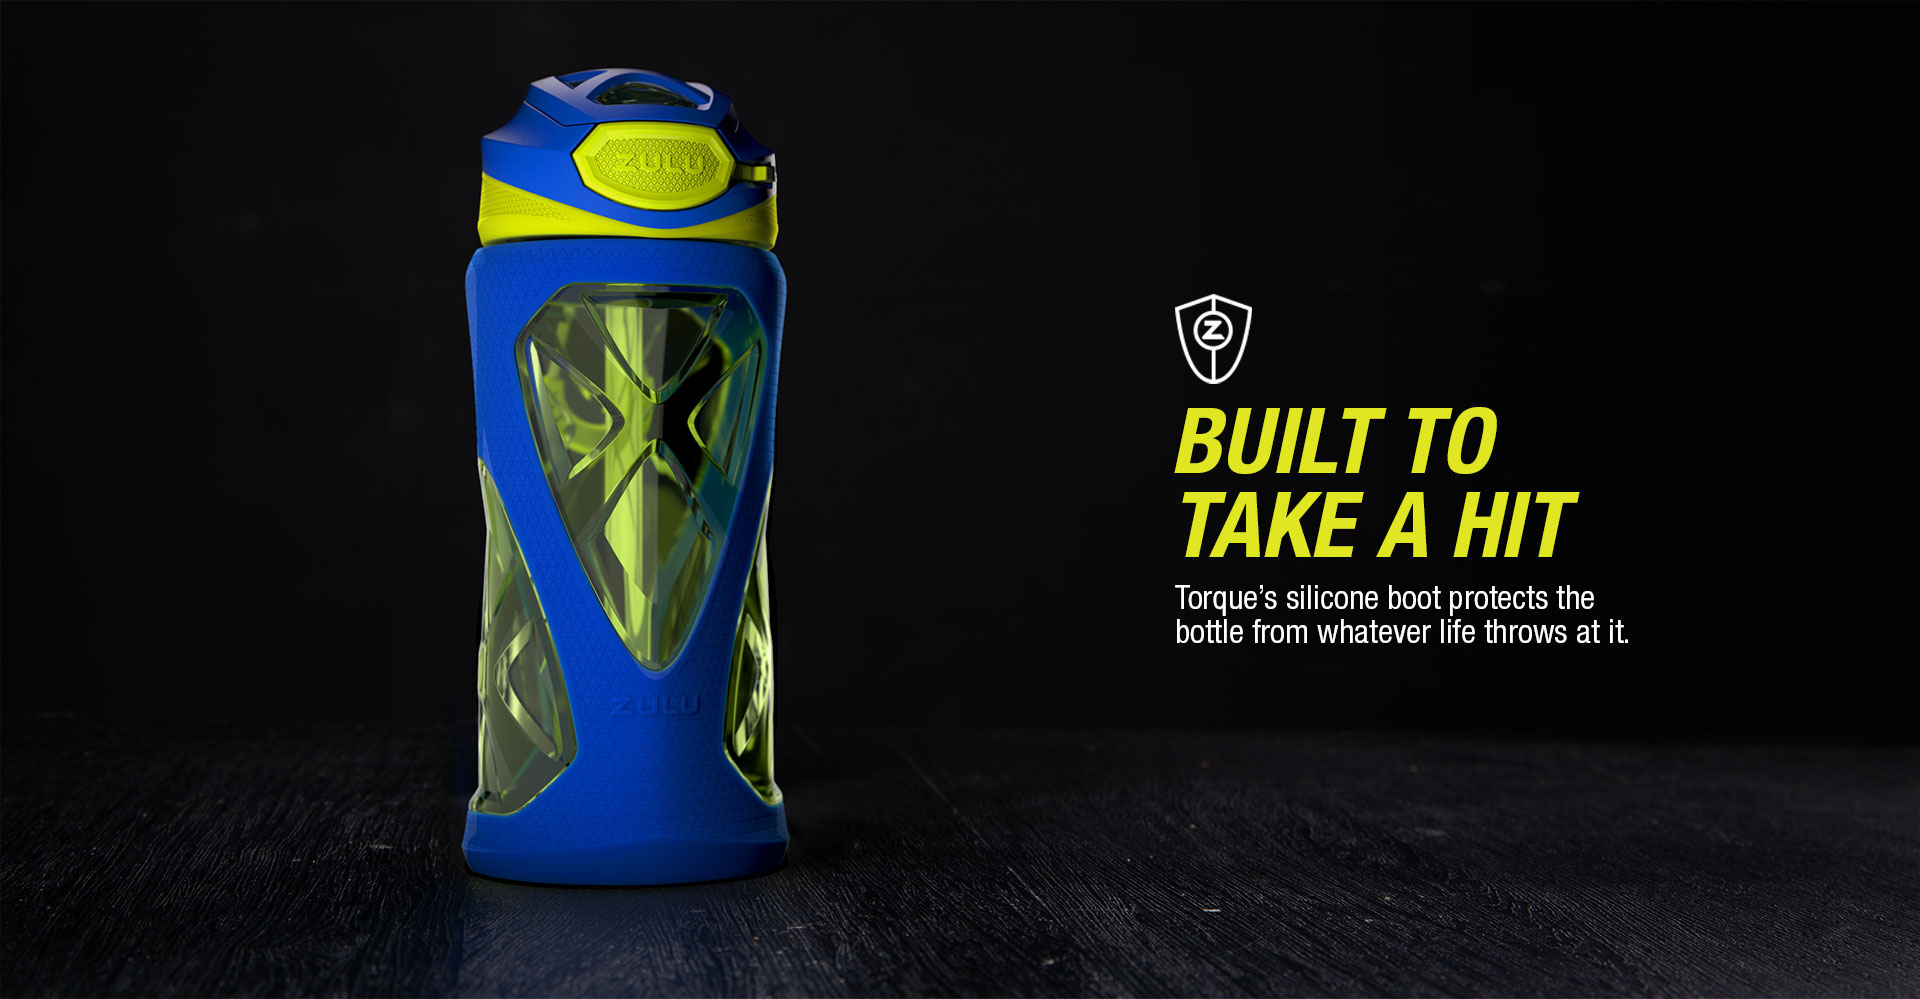 2019.02.18_Zulu_Torque-Kids-Water-Bottle_Banner01_Website_Built-to-take-a-hit.jpg